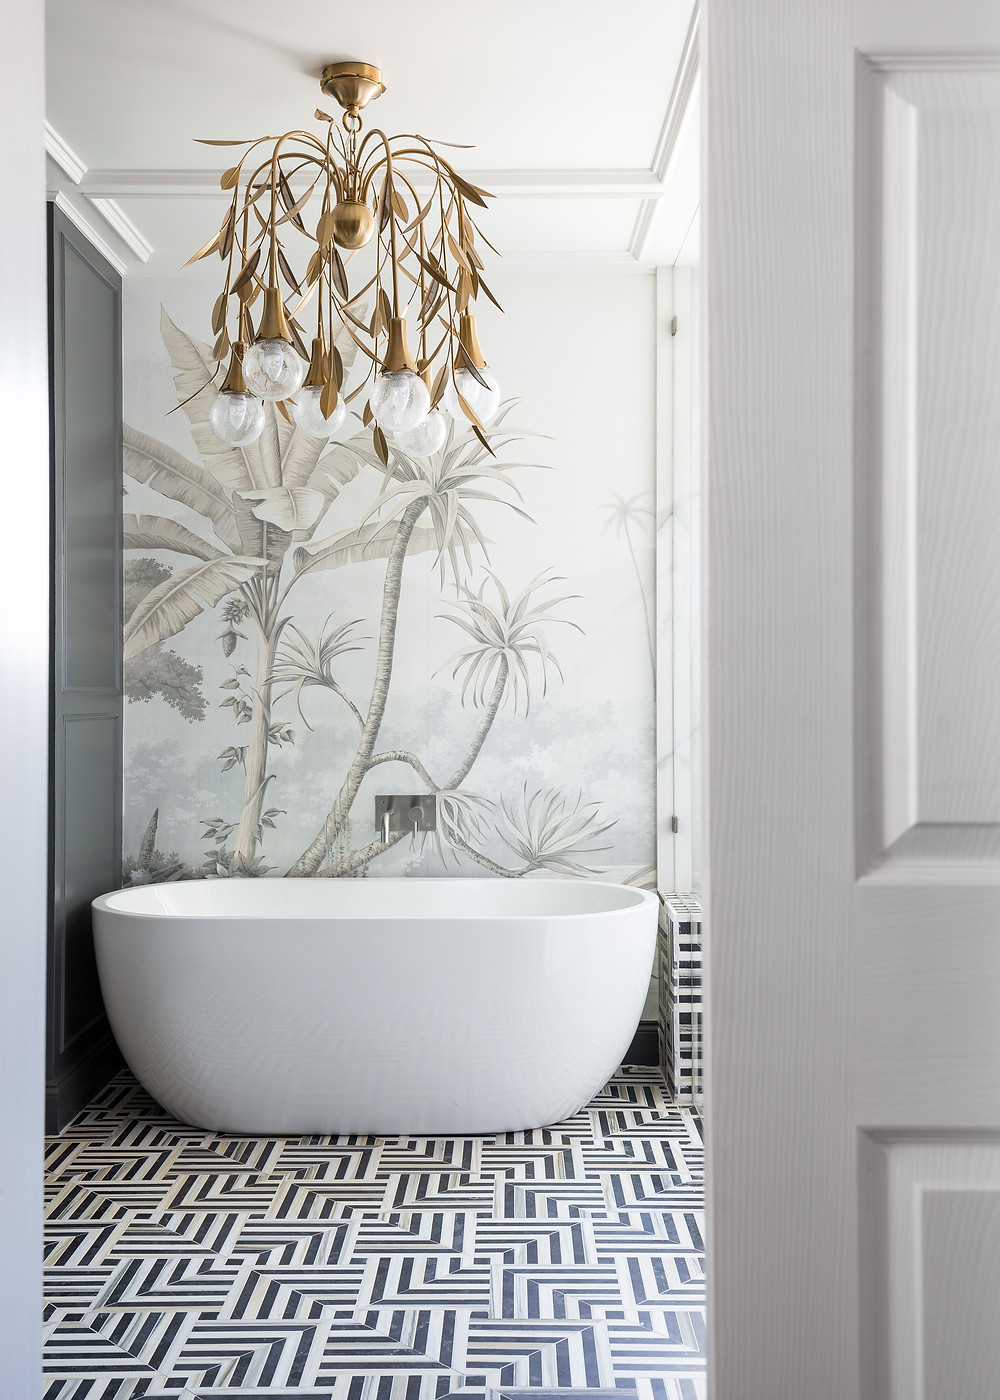 Master Bathroom With Wallpaper, Freestanding Tub And Black And White Marble Tile By Kelly Wearstler